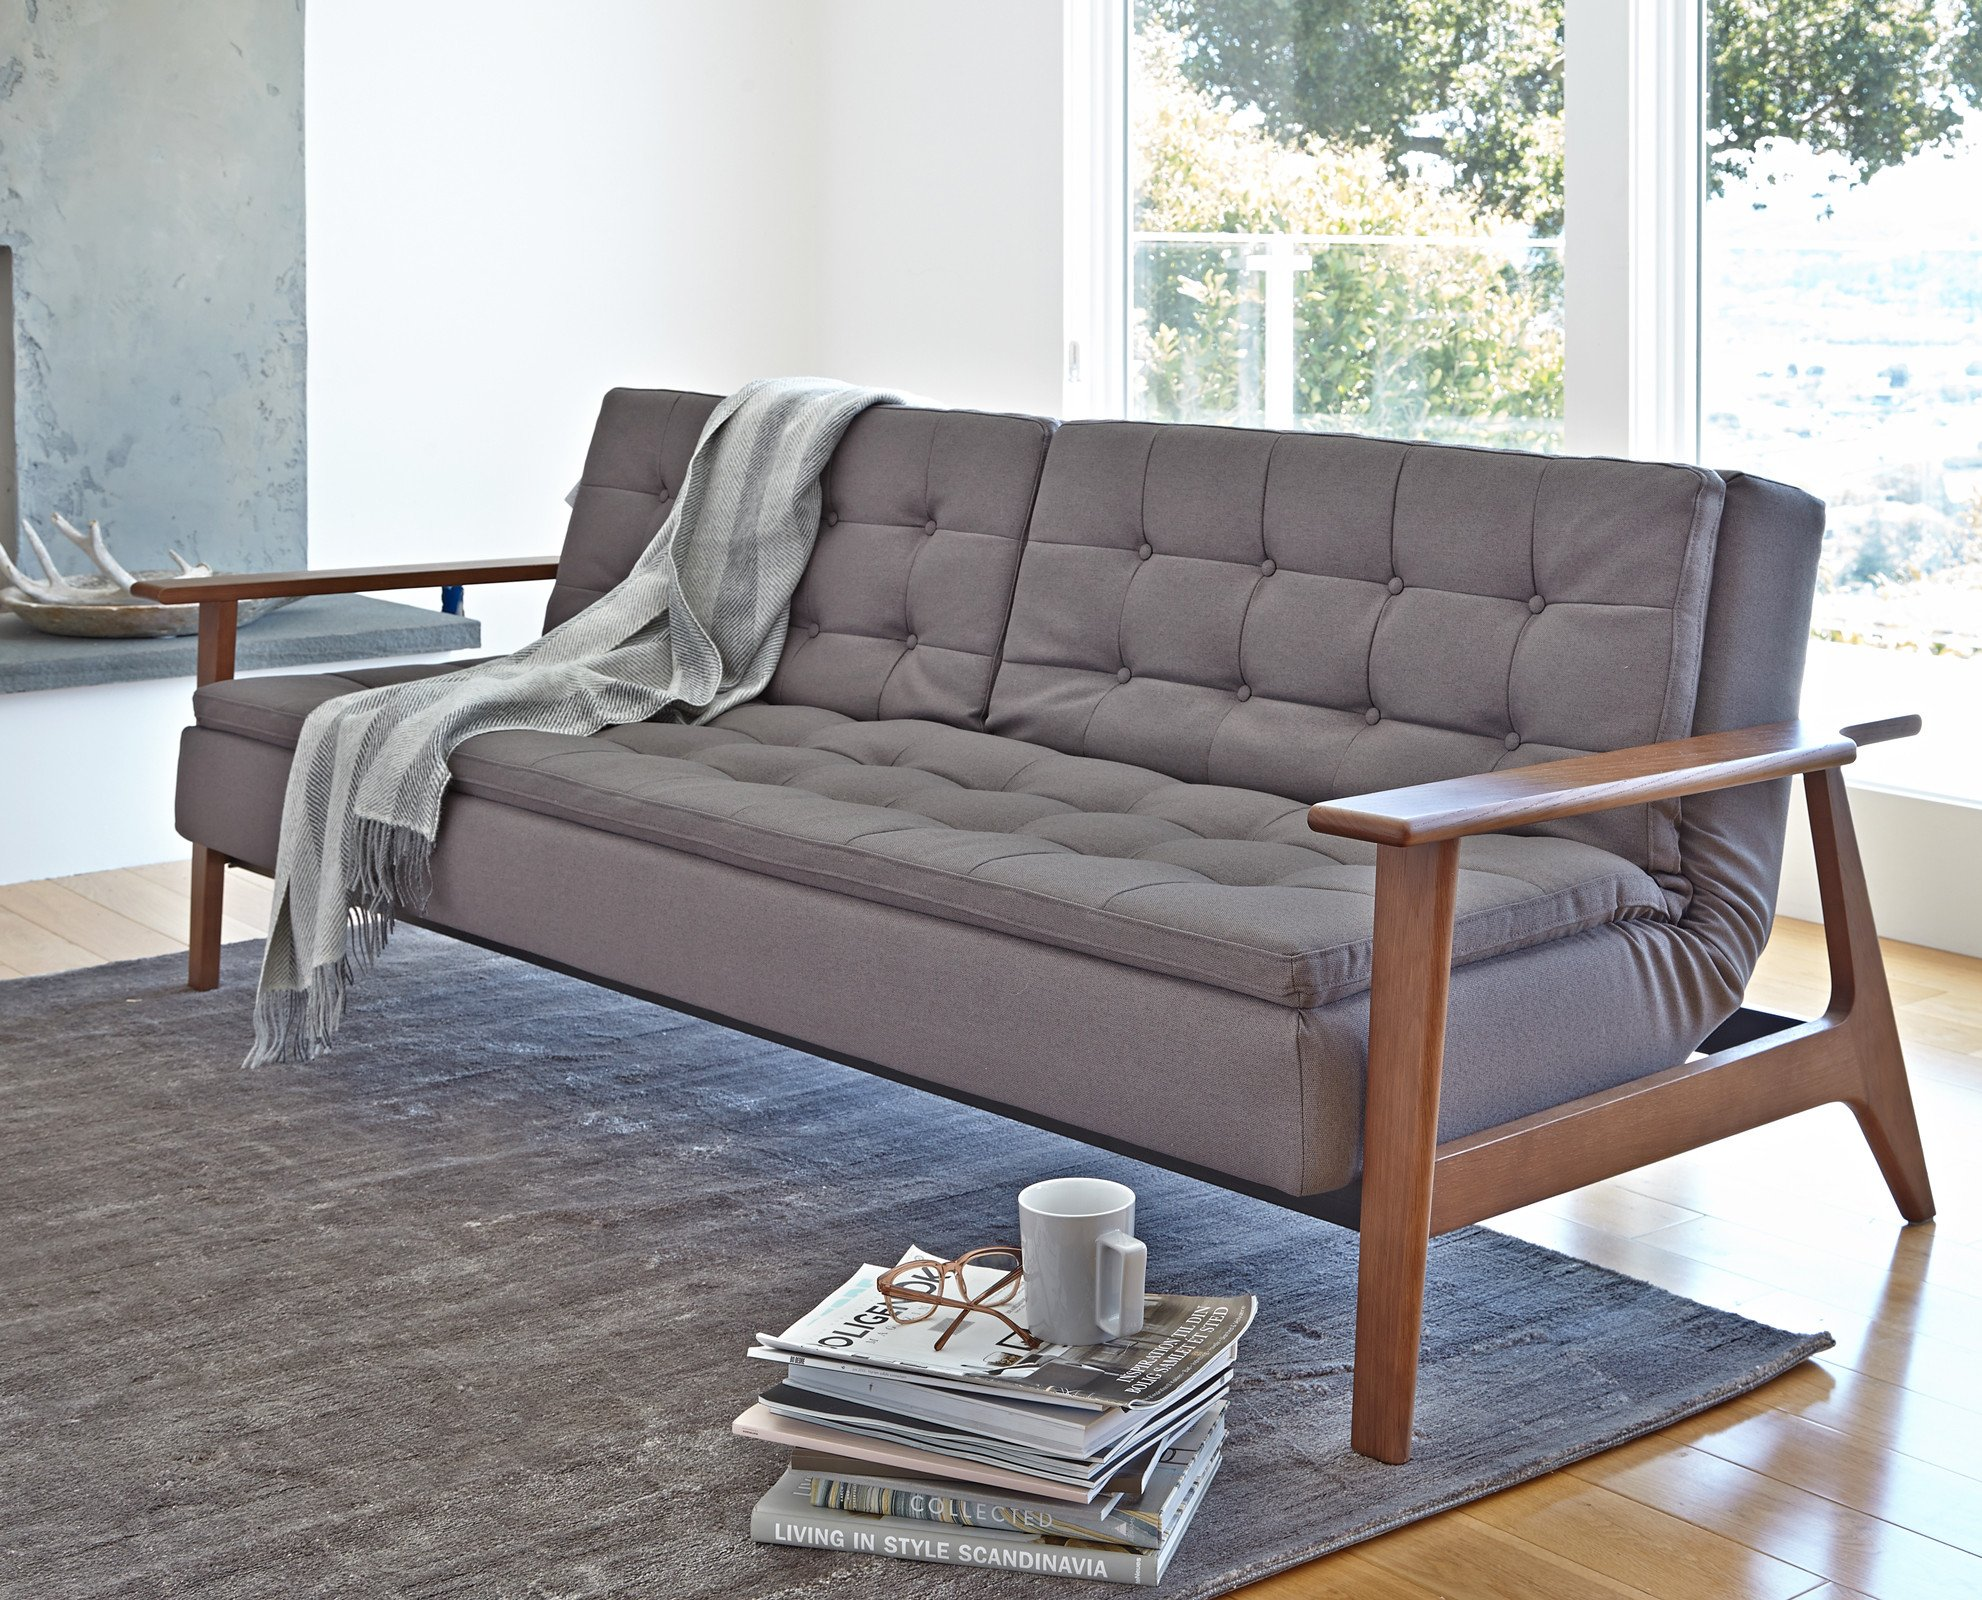 convertible sofas for living room classic scandinavian modern design sleeper convertible daybed XCLPAGA